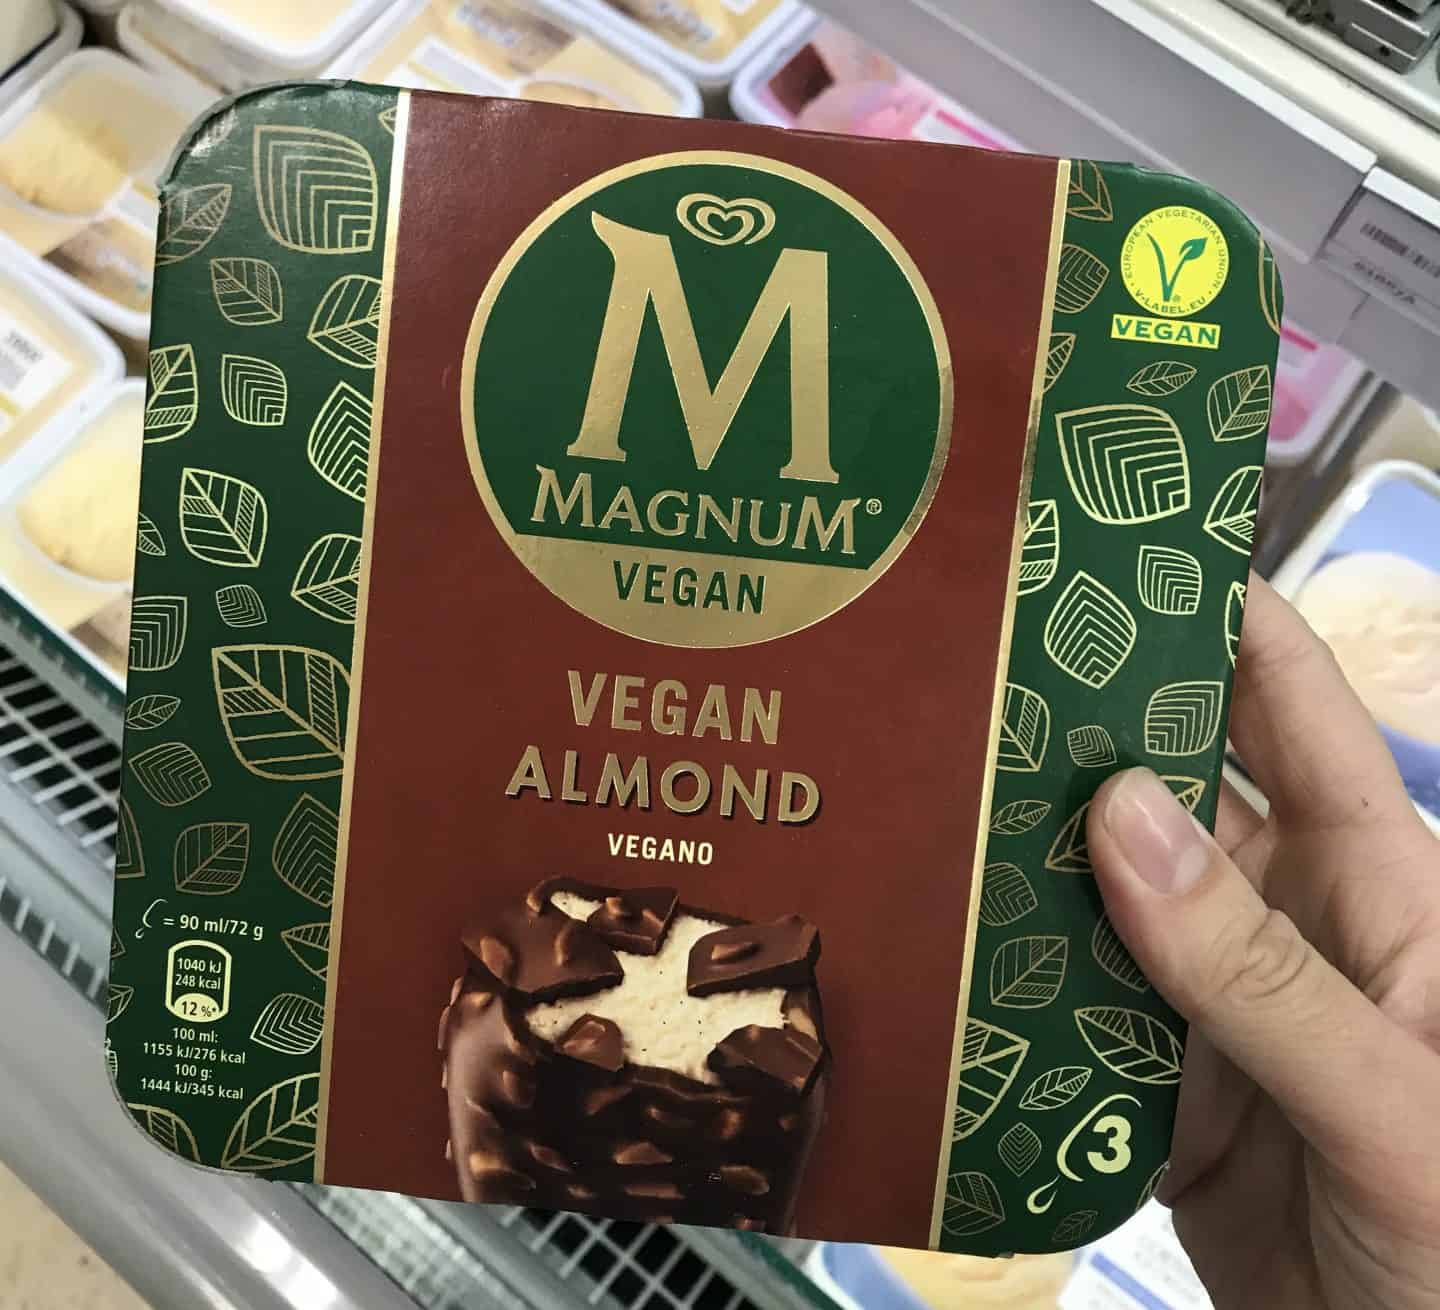 gluten free ice-creams and ice lollies UK 2019